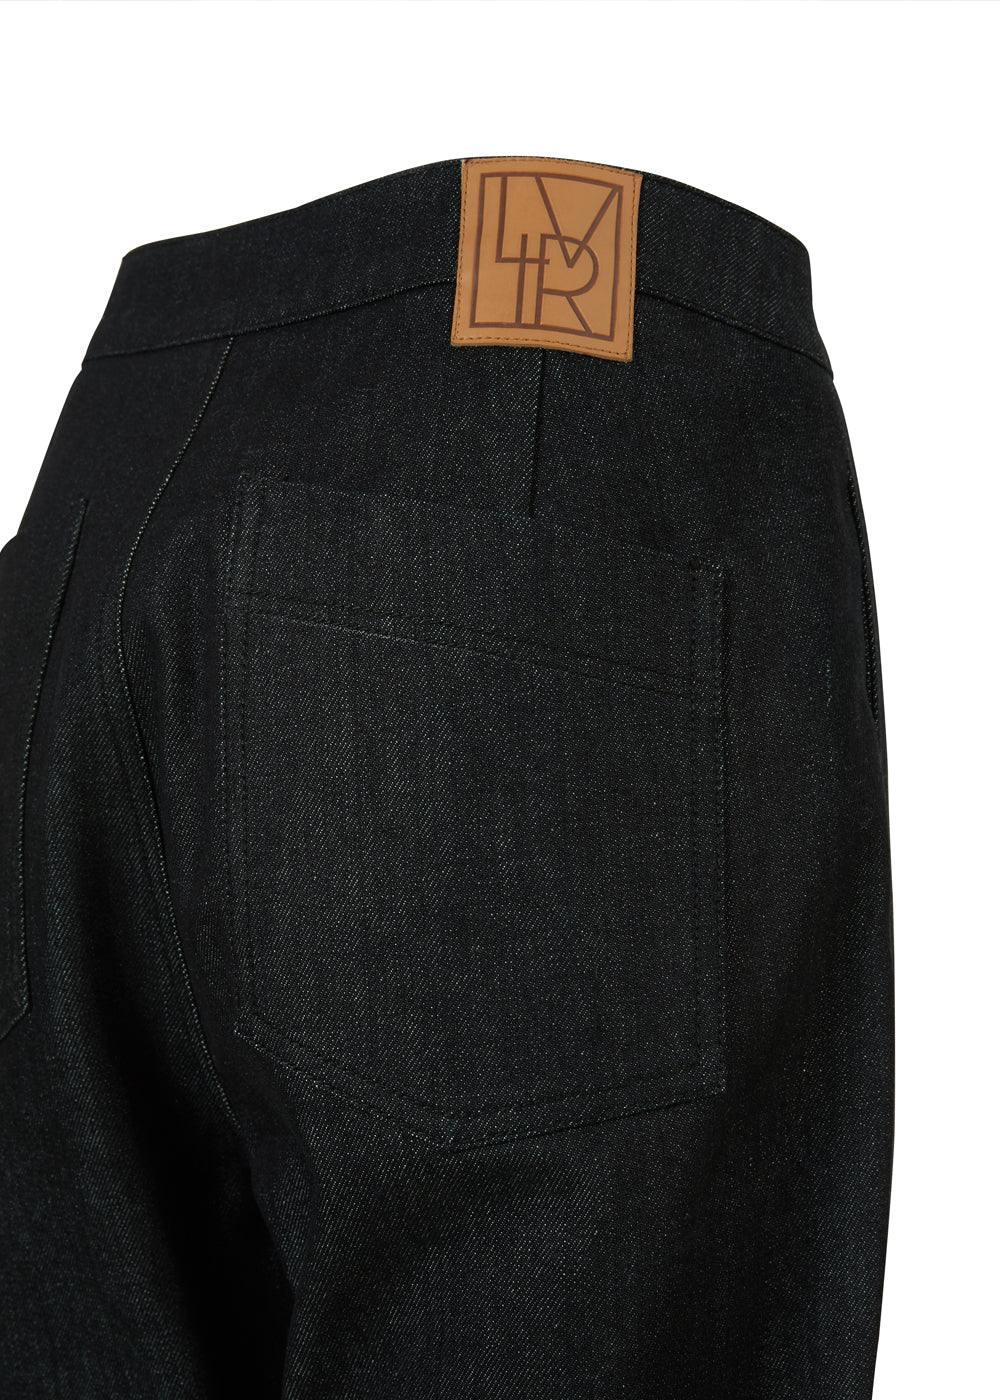 LVIR TWIST DENIM